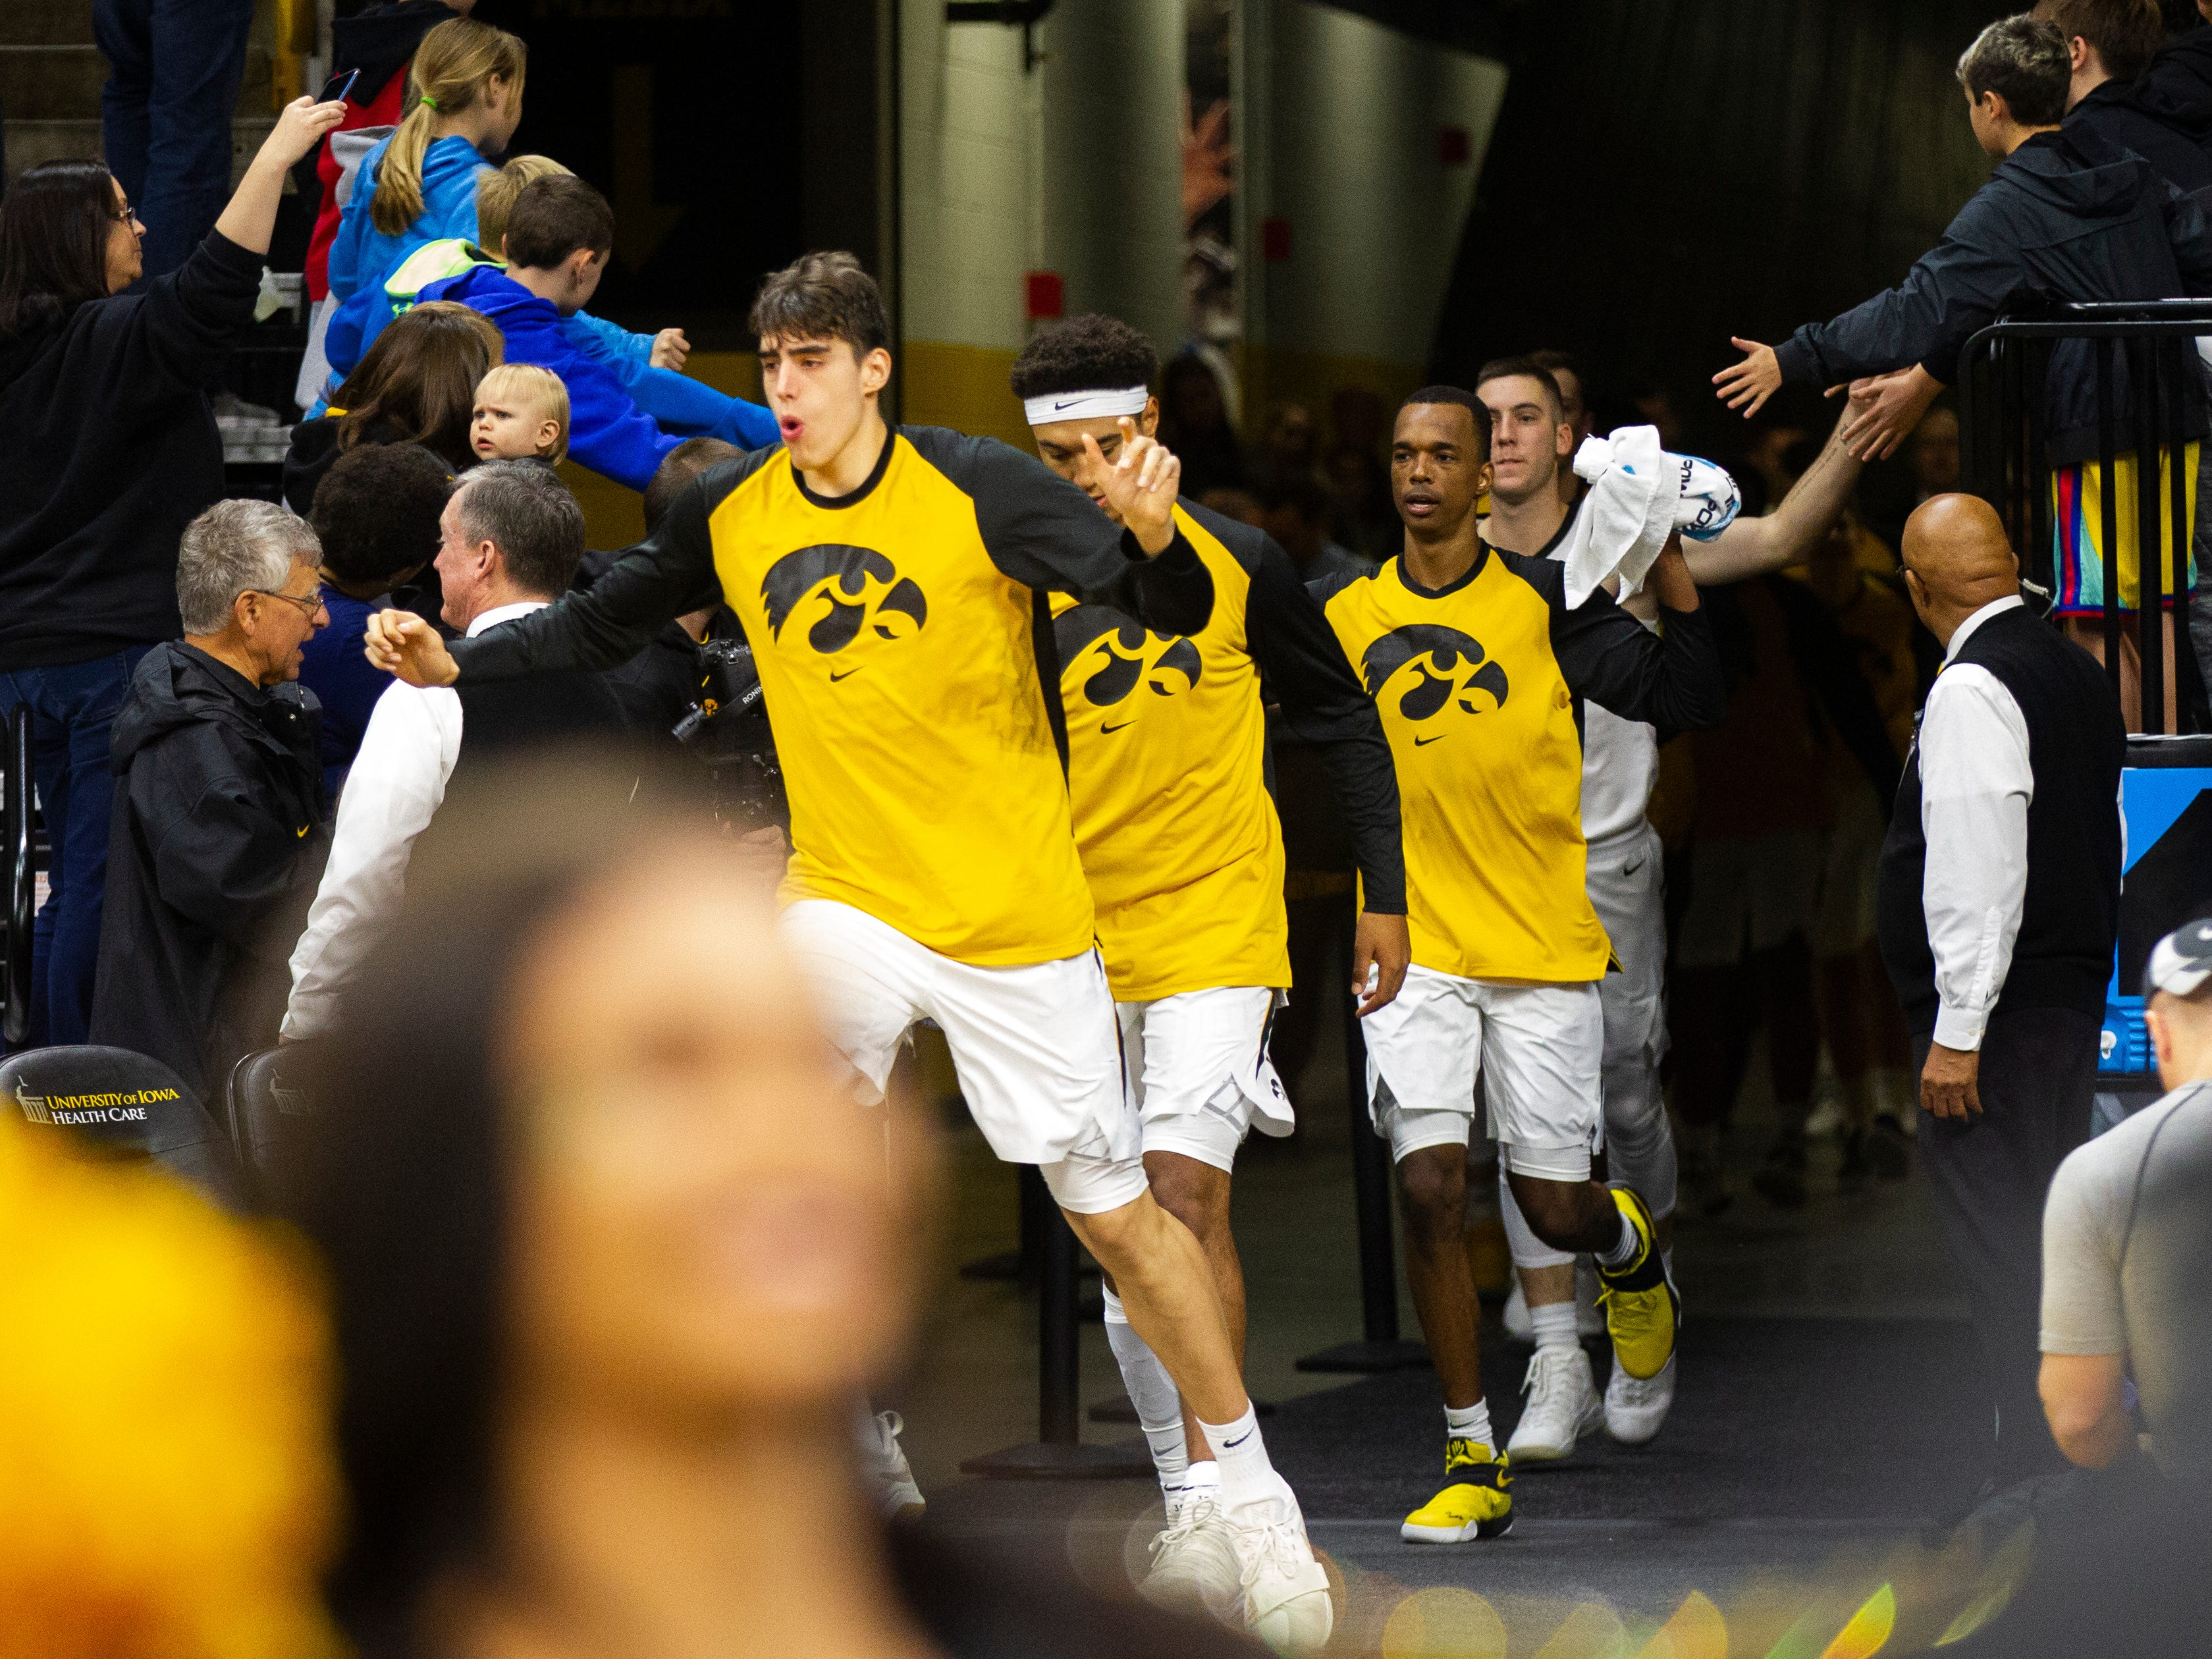 Iowa players take the court before a men's basketball exhibition game on Sunday, Nov. 4, 2018, at Carver-Hawkeye Arena in Iowa City.